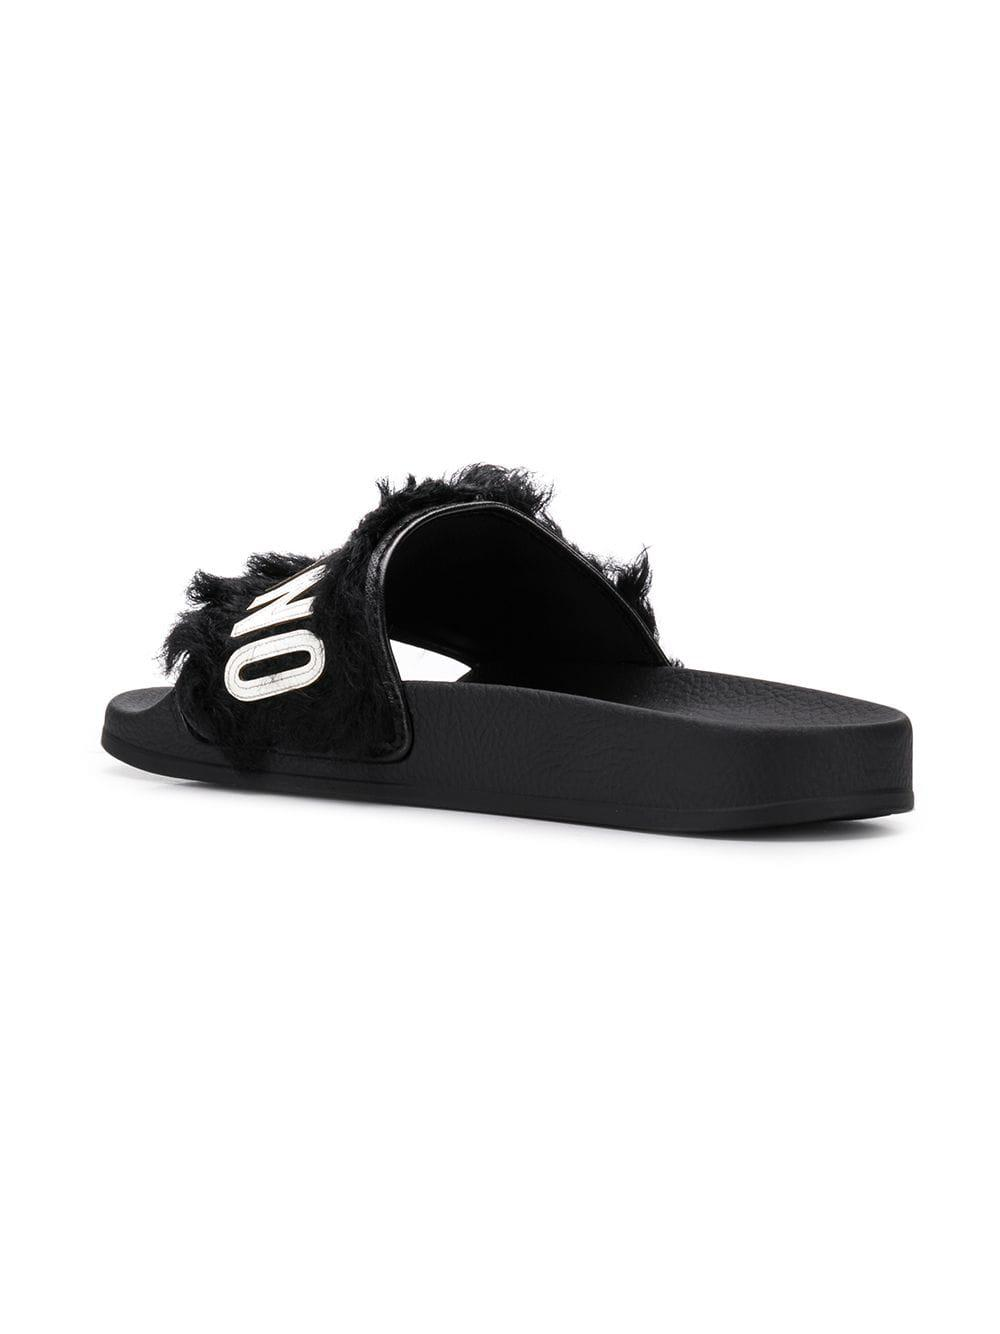 1ea2c340374 Moschino Logo Furry Slippers in Black - Lyst